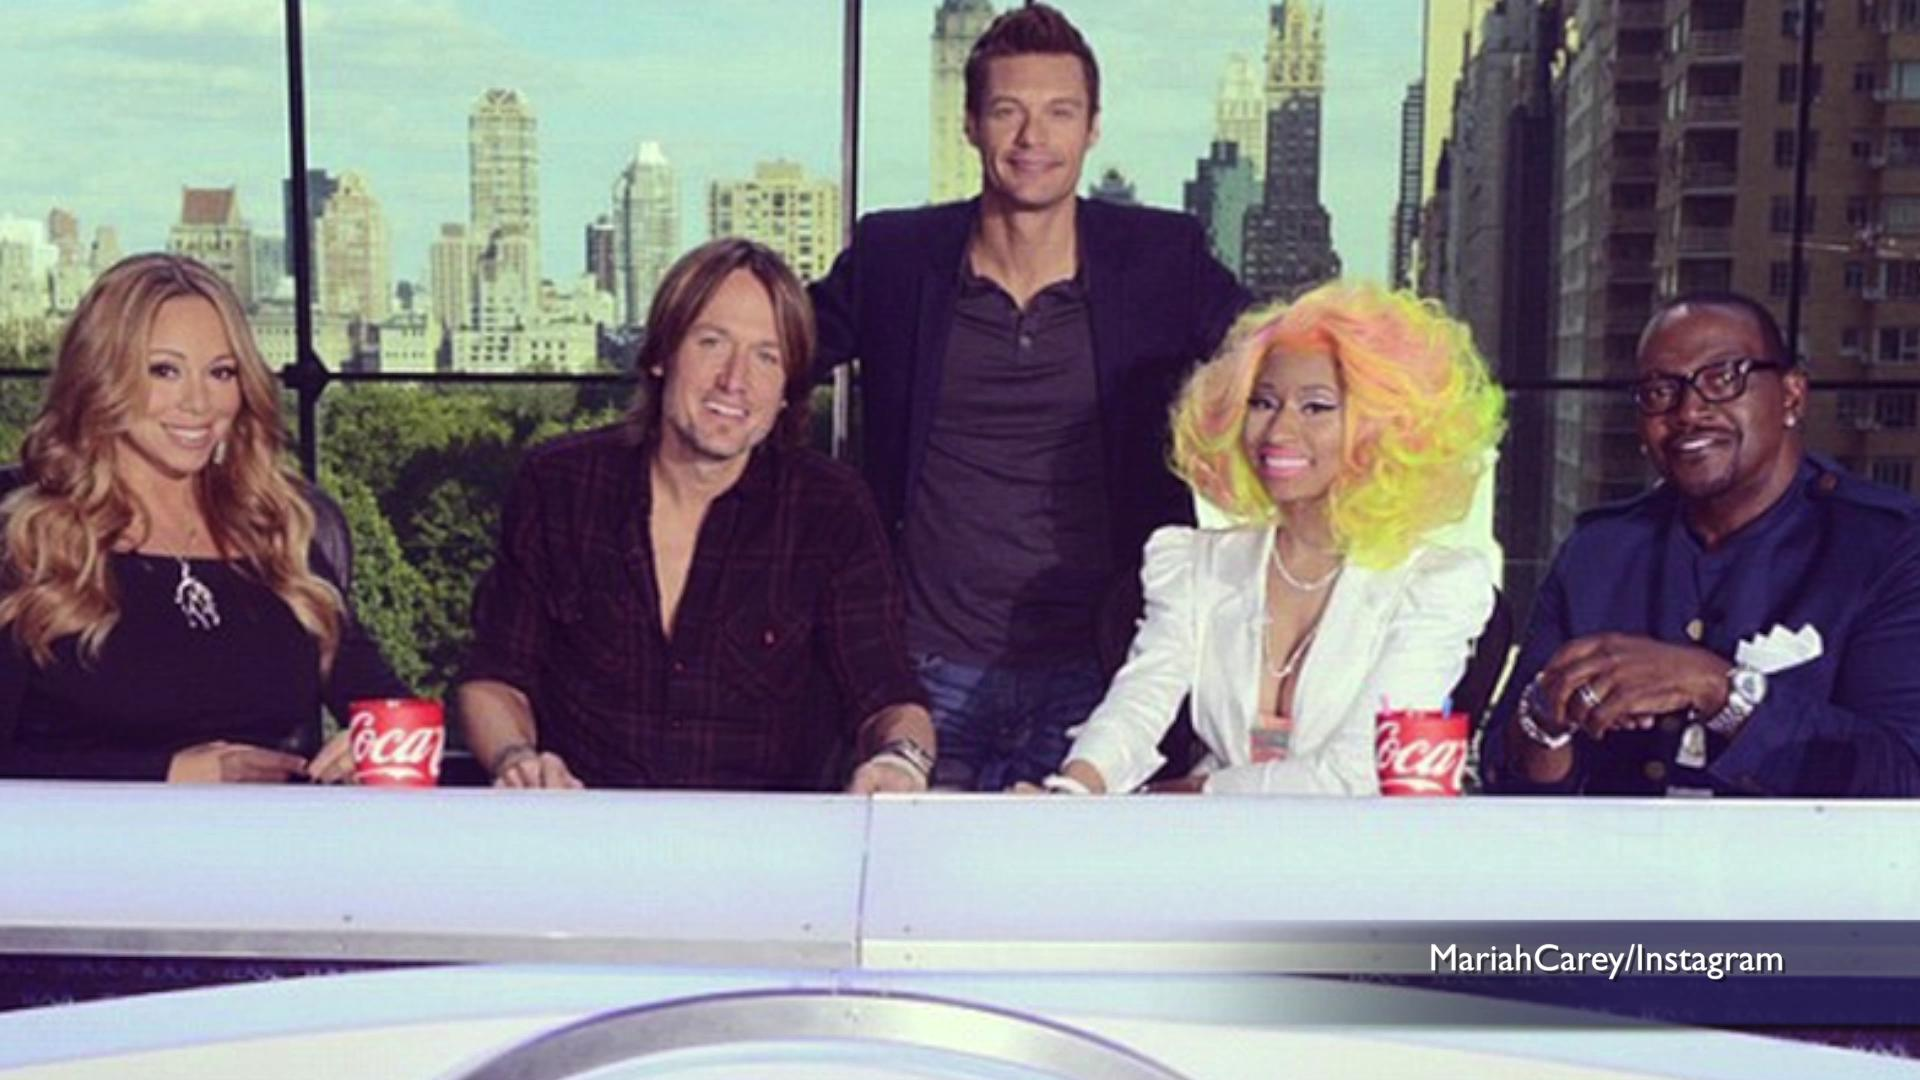 Mariah Carey calls 'American Idol' the worst experience of her life